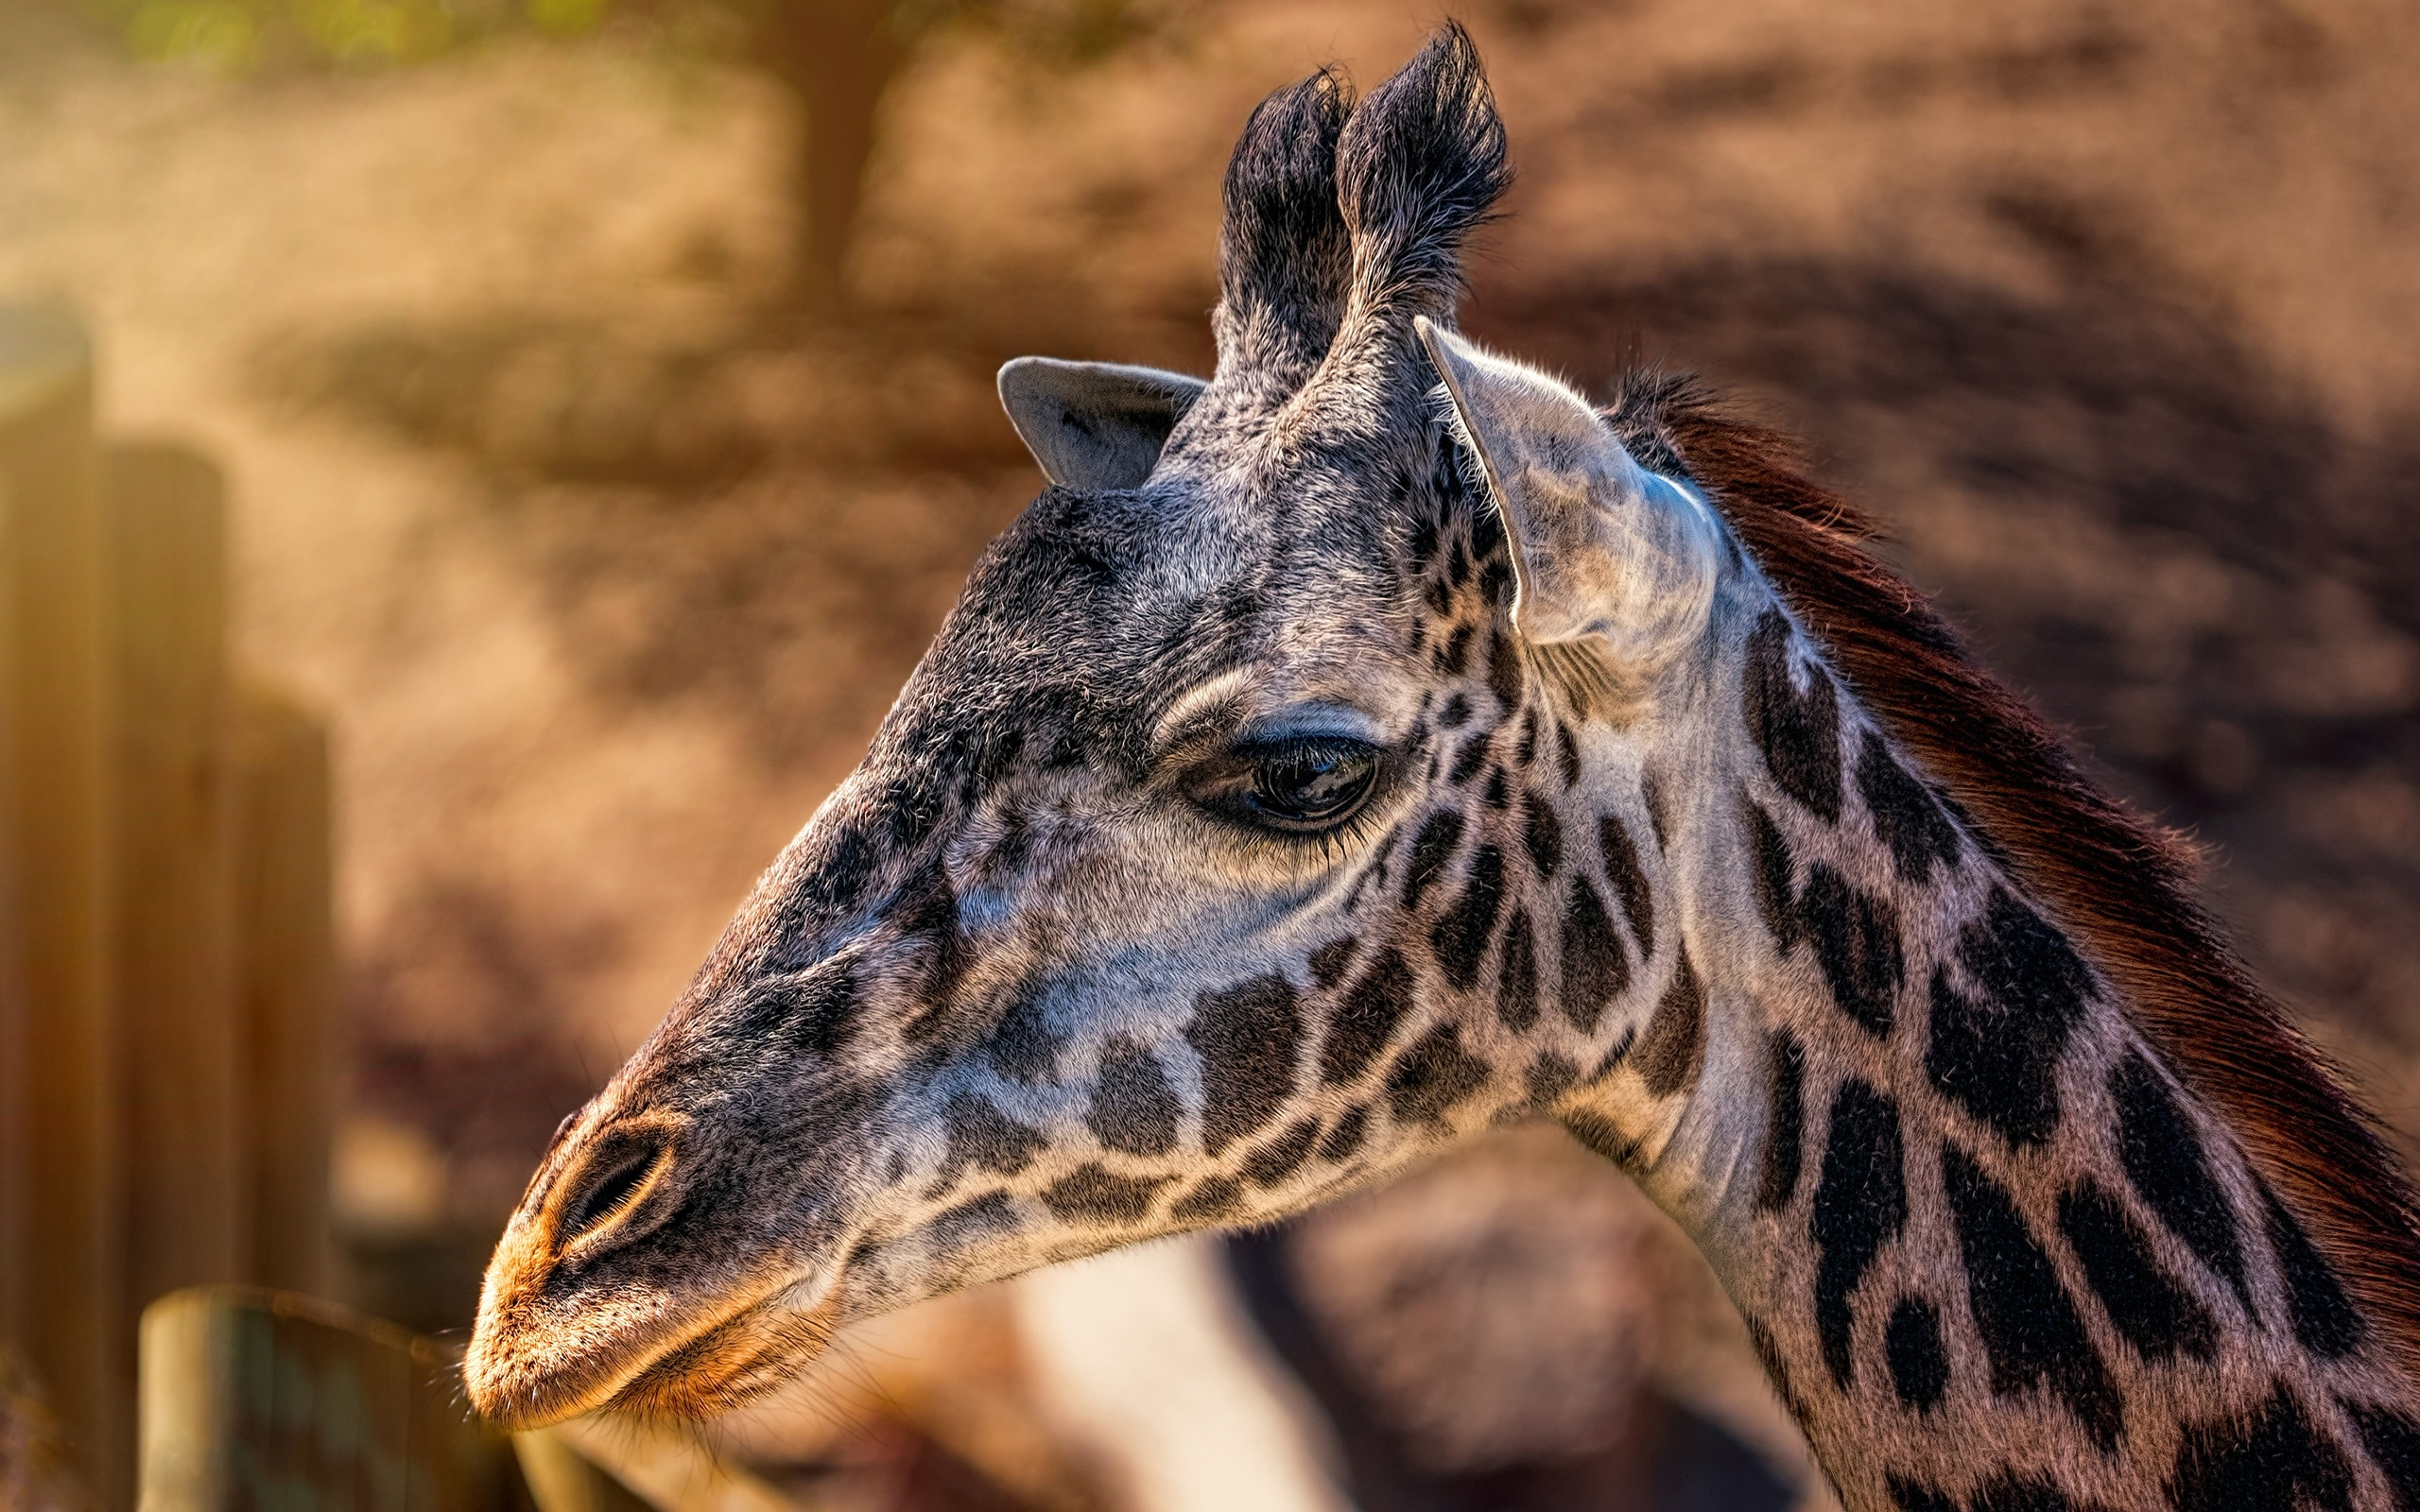 giraffes-head-closeup-4k-hp.jpg